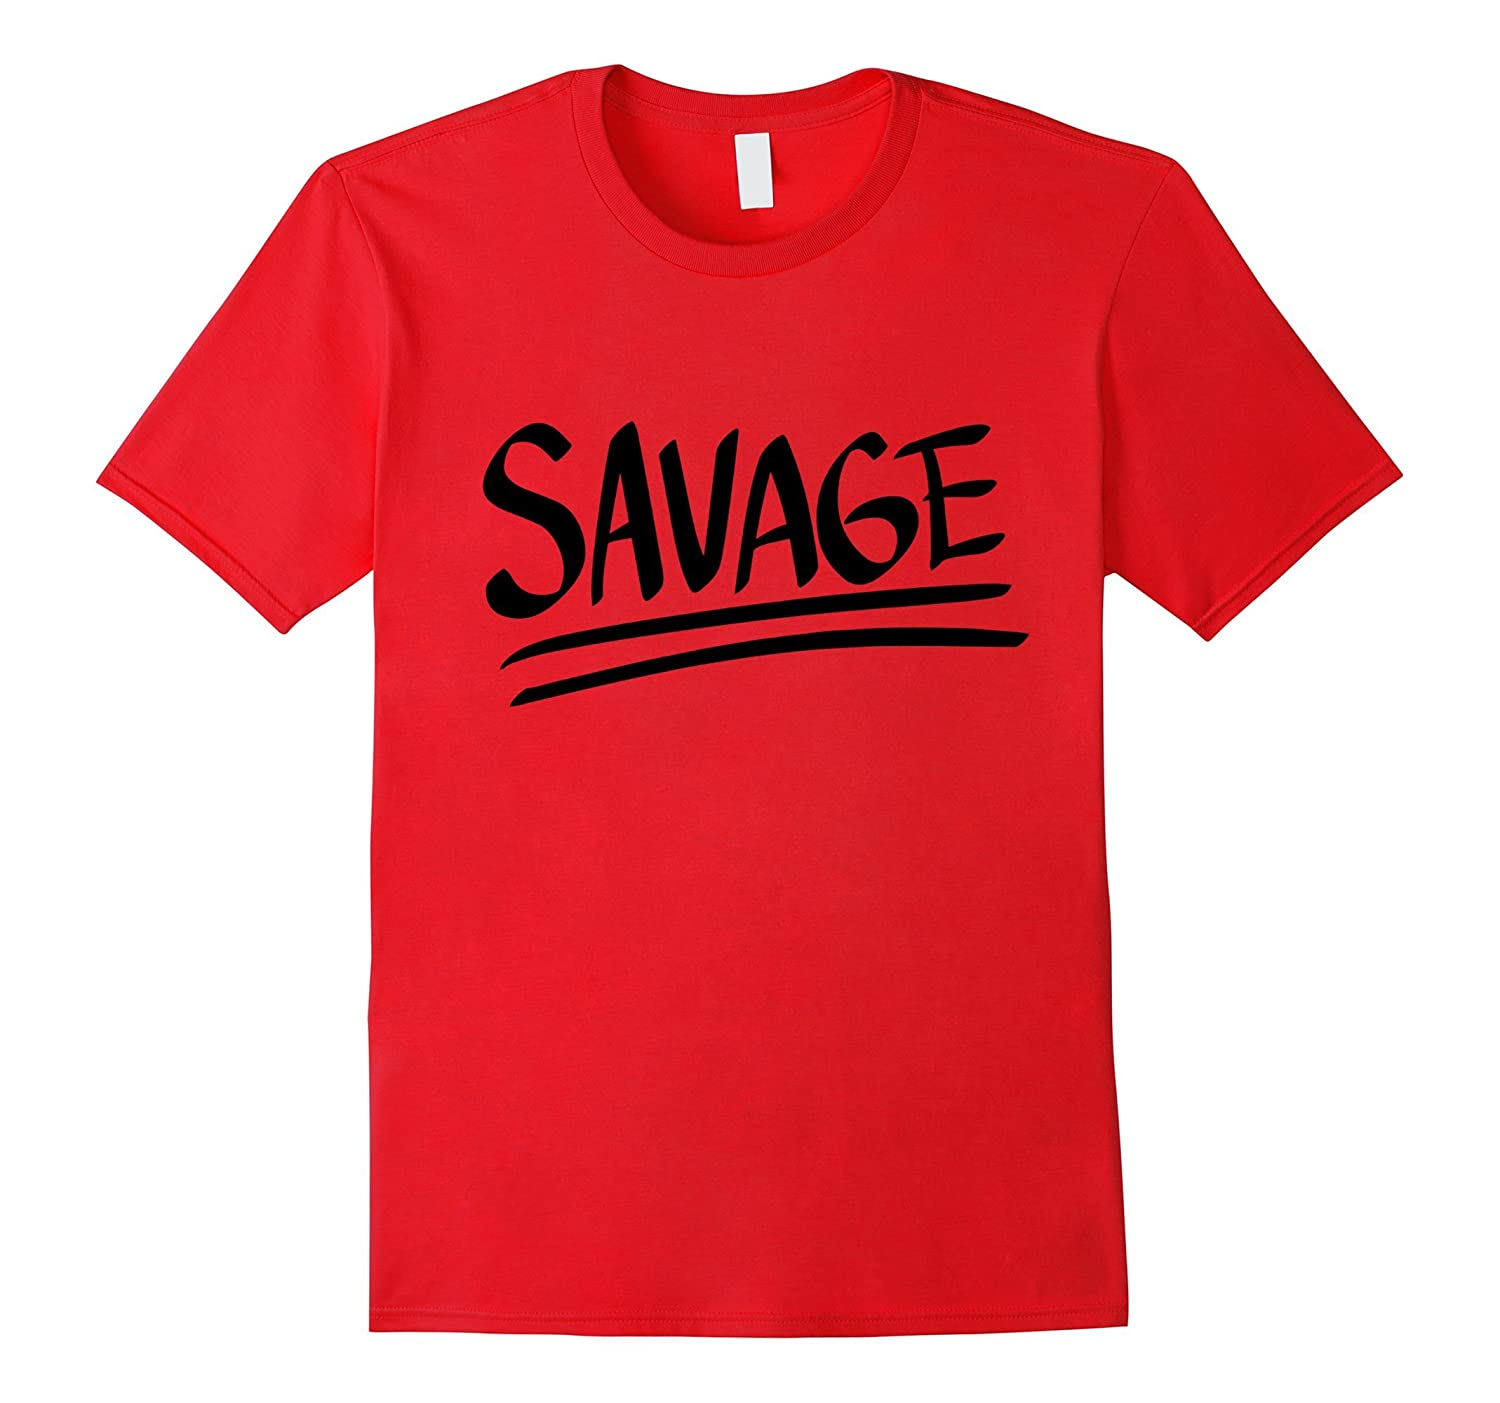 Savage Handwritten Graffiti T-shirt-Art